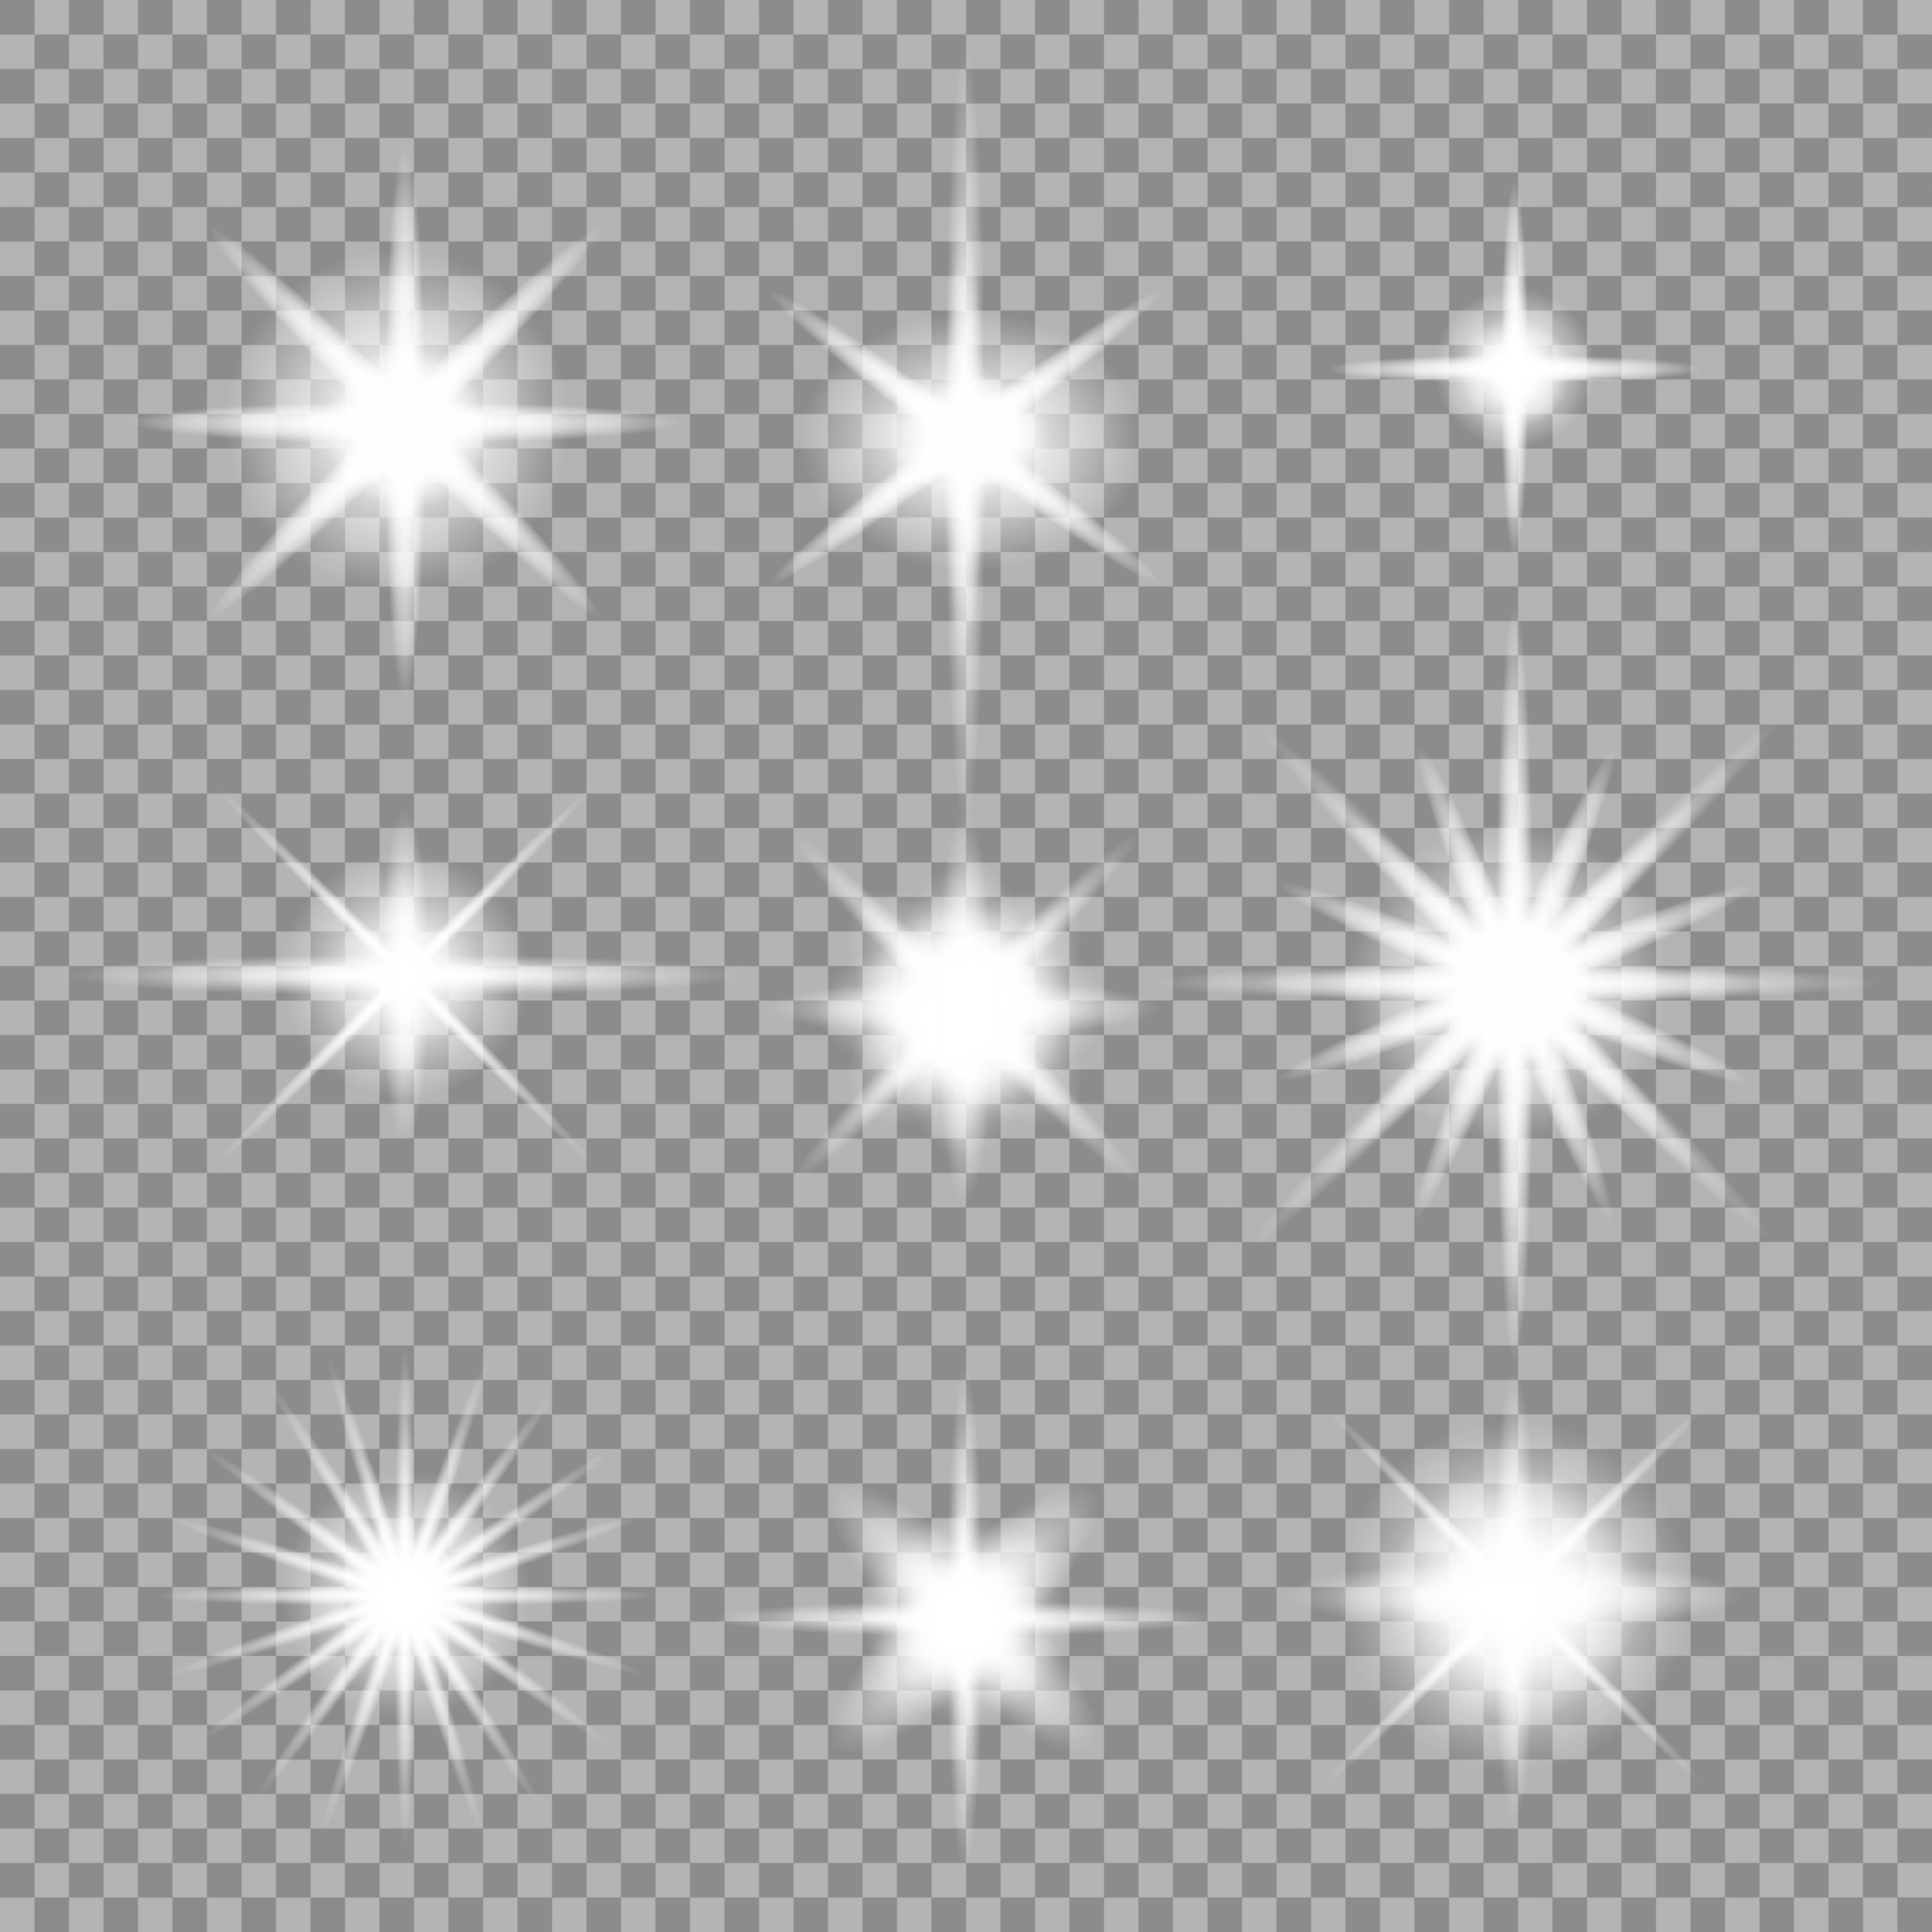 Sparkle Burst Vector: Vector Set Of Transparent Abstract Star Burst With Sparkles